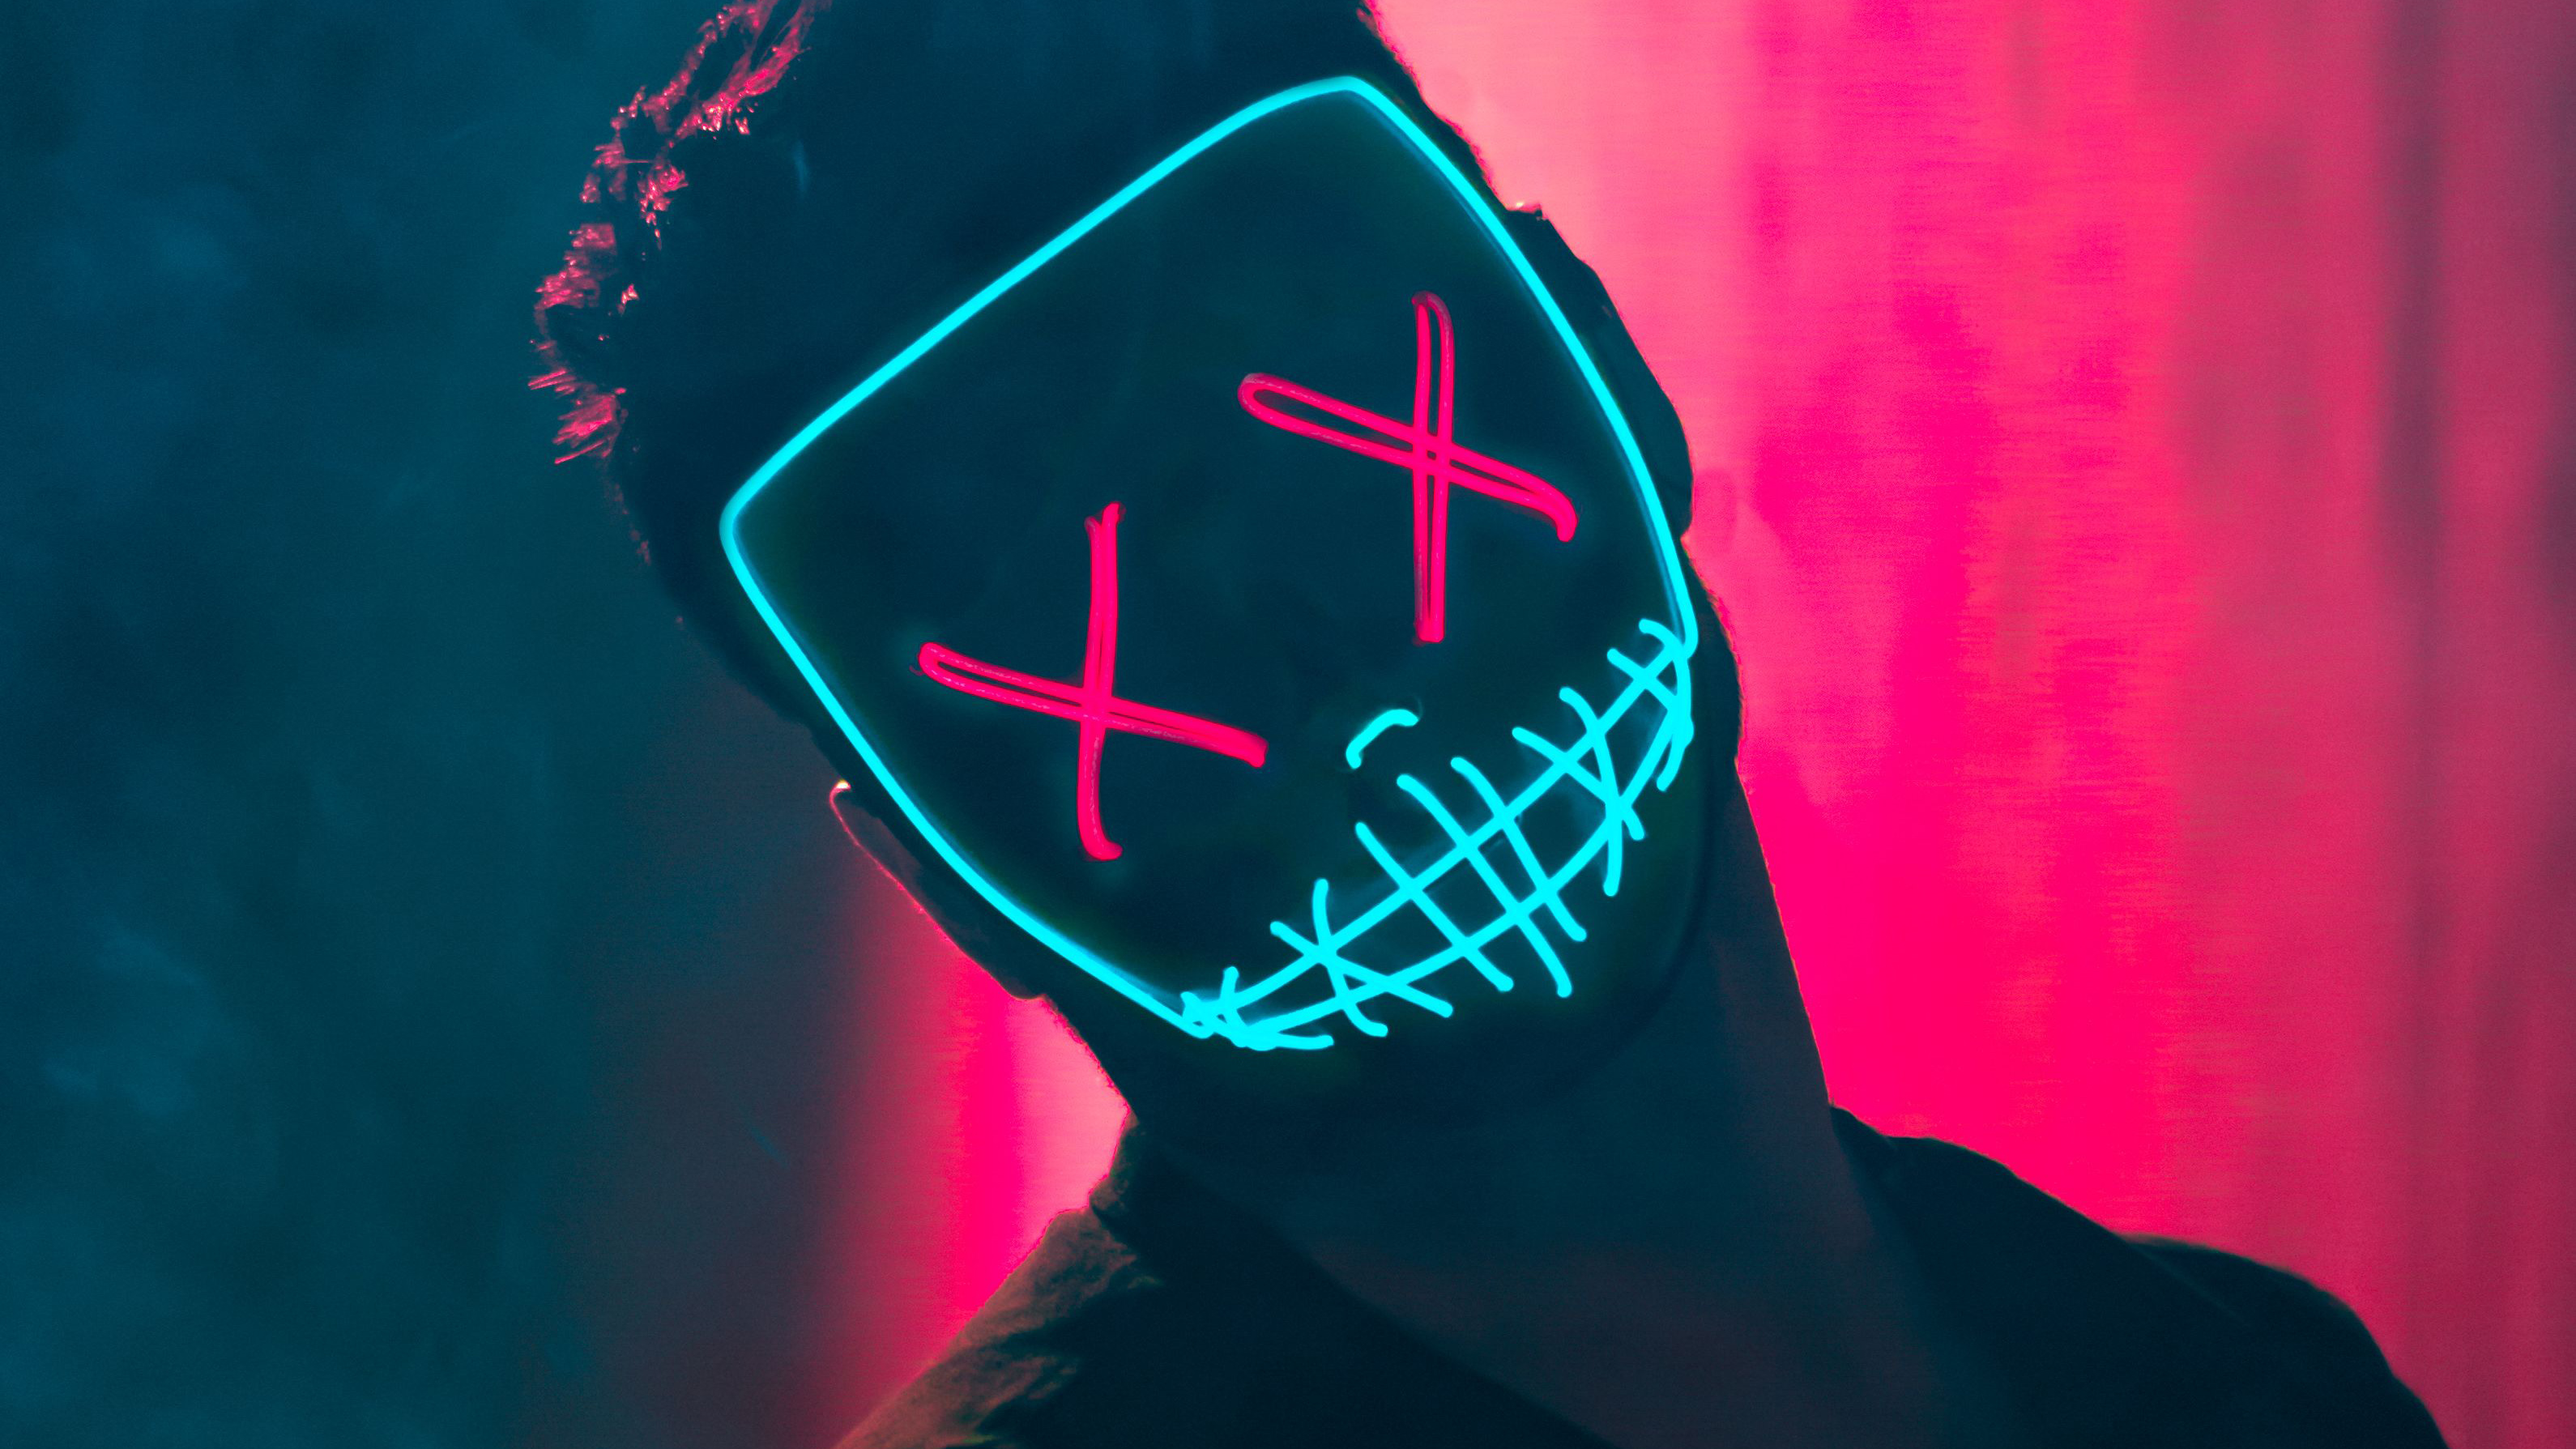 Neon Mask Guy Hd Photography 4k Wallpapers Images Backgrounds Photos And Pictures